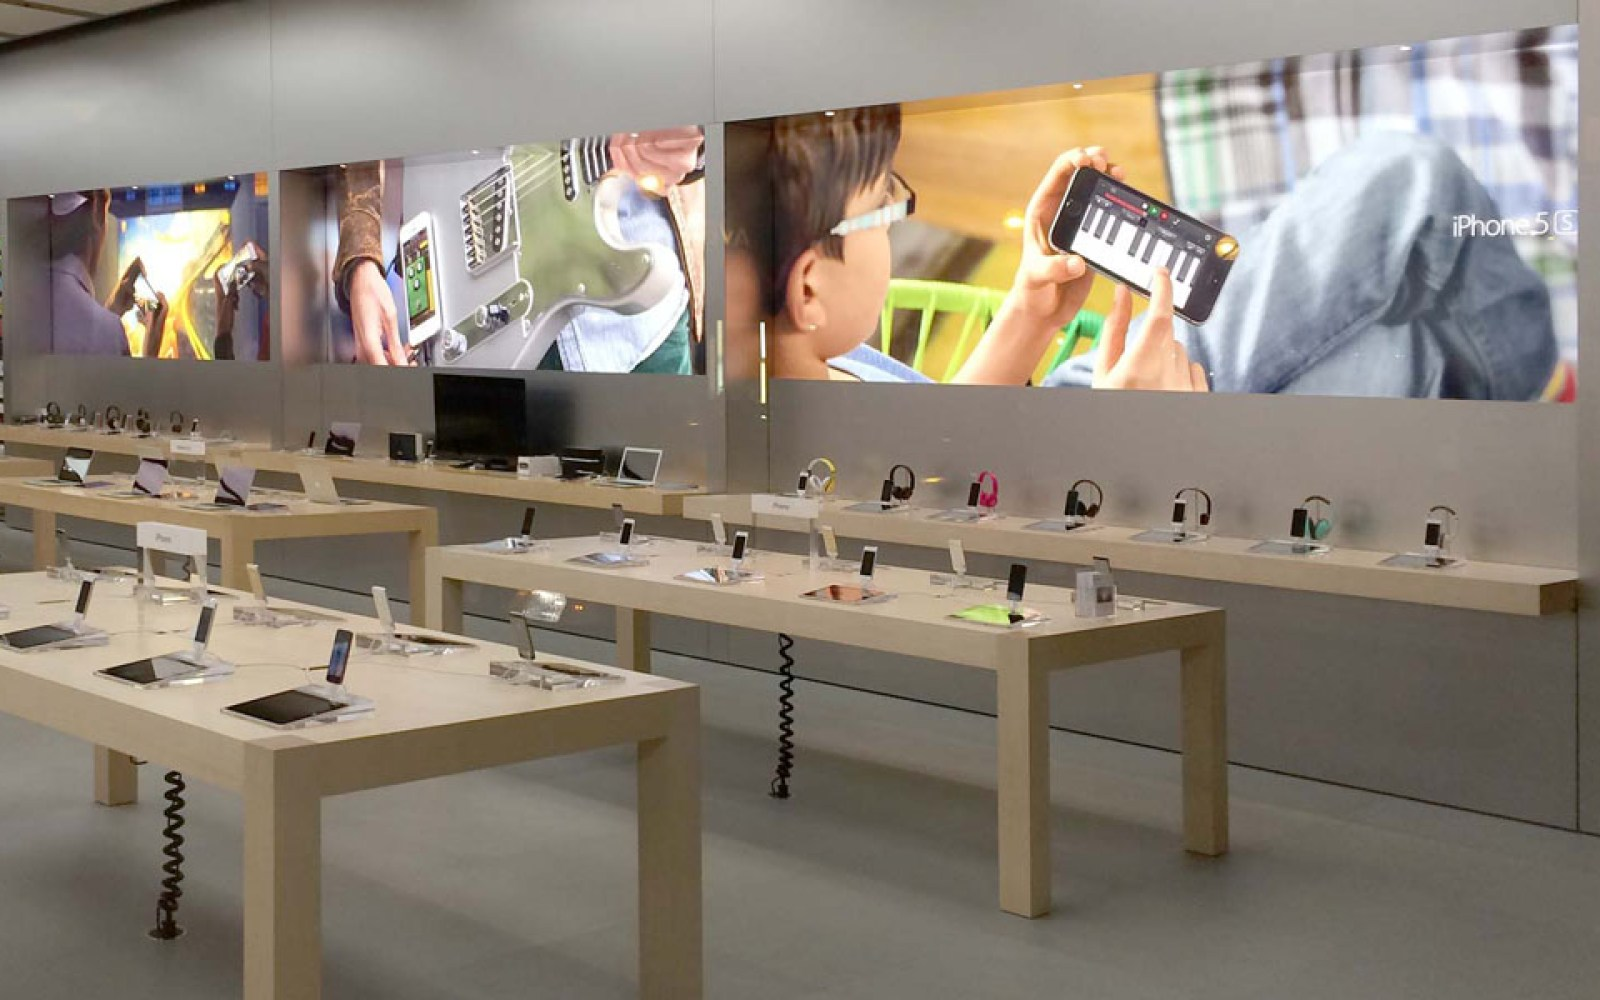 Apple Store visuals revamped with inspiration from recent TV campaigns